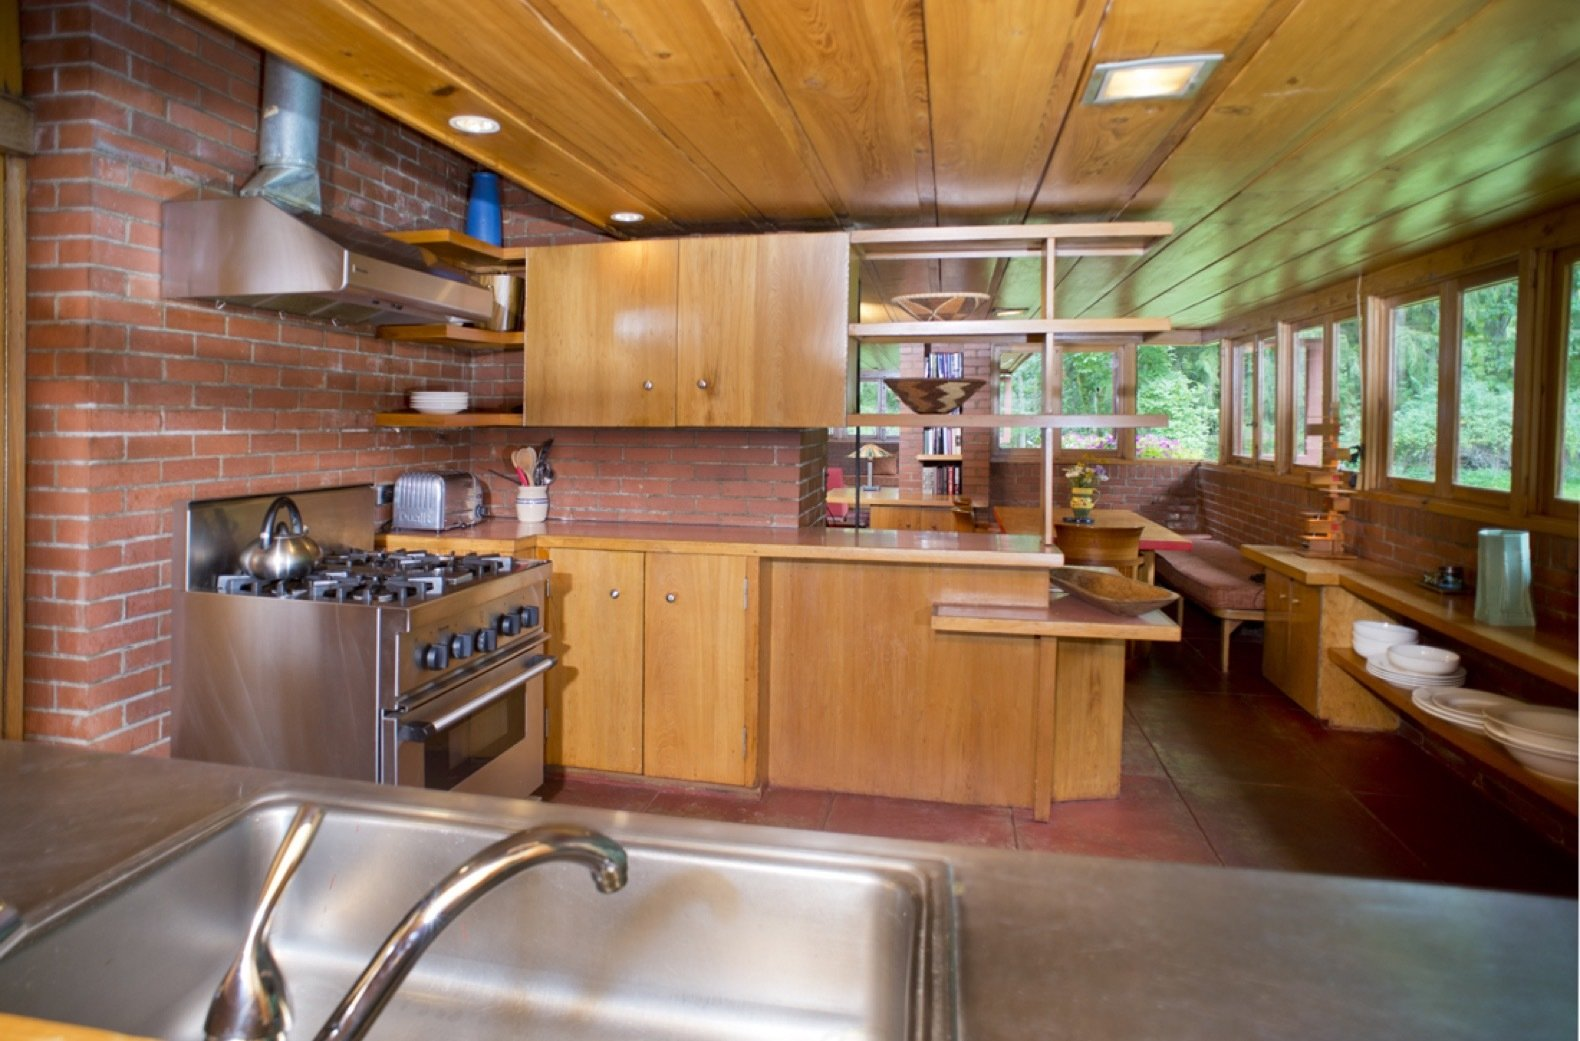 Kitchen, Refrigerator, Cooktops, Wall Oven, Wood, Range Hood, Brick, Range, Concrete, Drop In, Open, and Recessed Here is the kitchen in the south end of the home next to the dining area.   Best Kitchen Open Refrigerator Brick Drop In Range Photos from New Jersey's Oldest and Largest Frank Lloyd Wright House Cuts Price to $1.45M